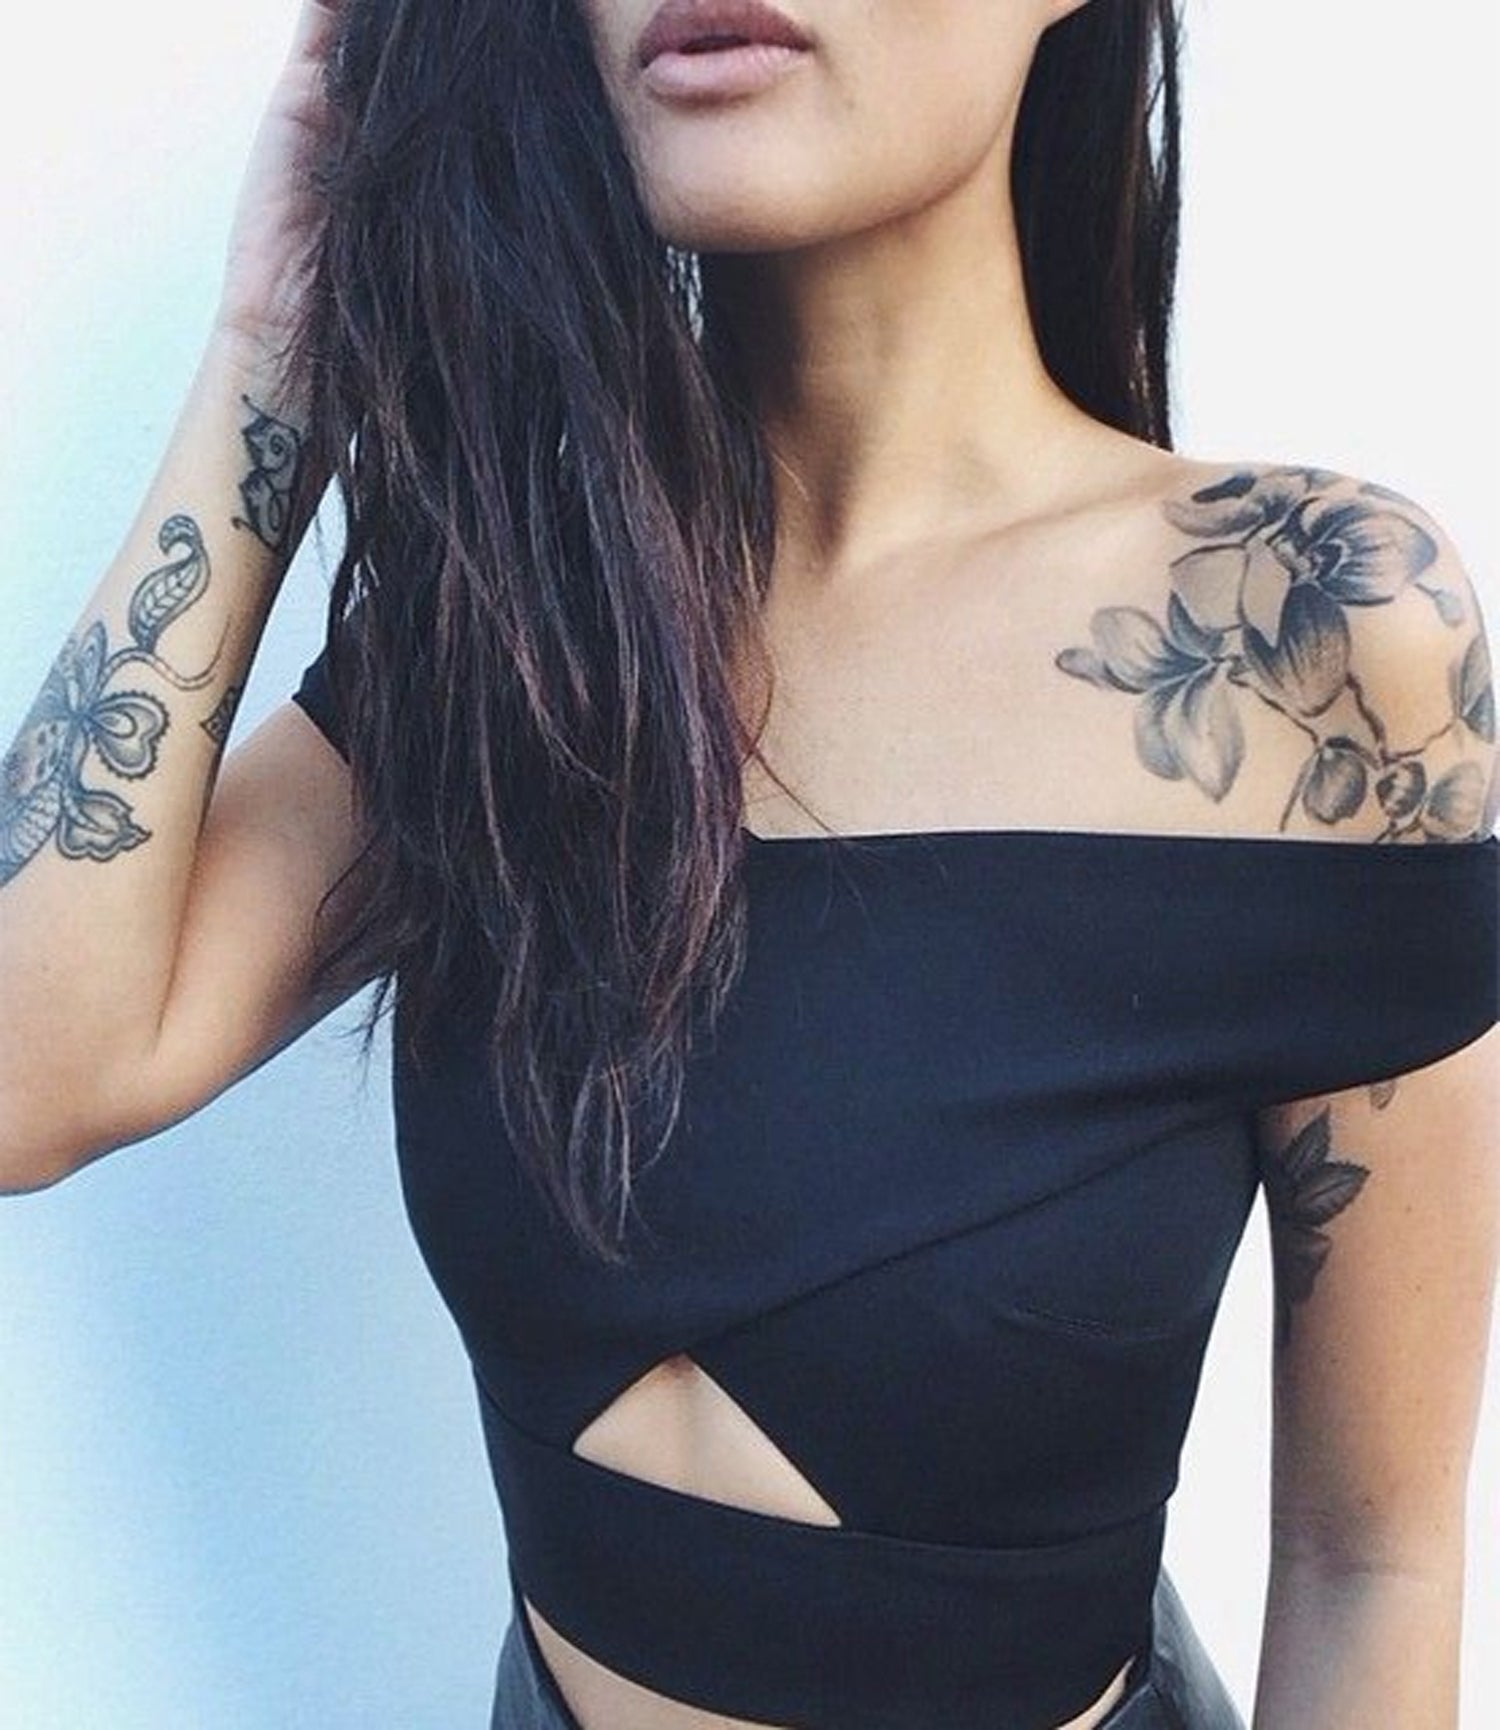 Black Watercolor Flower Shoulder Tattoo Ideas for Women - Floral Arm Sleeve Tatt - MyBodiArt.com